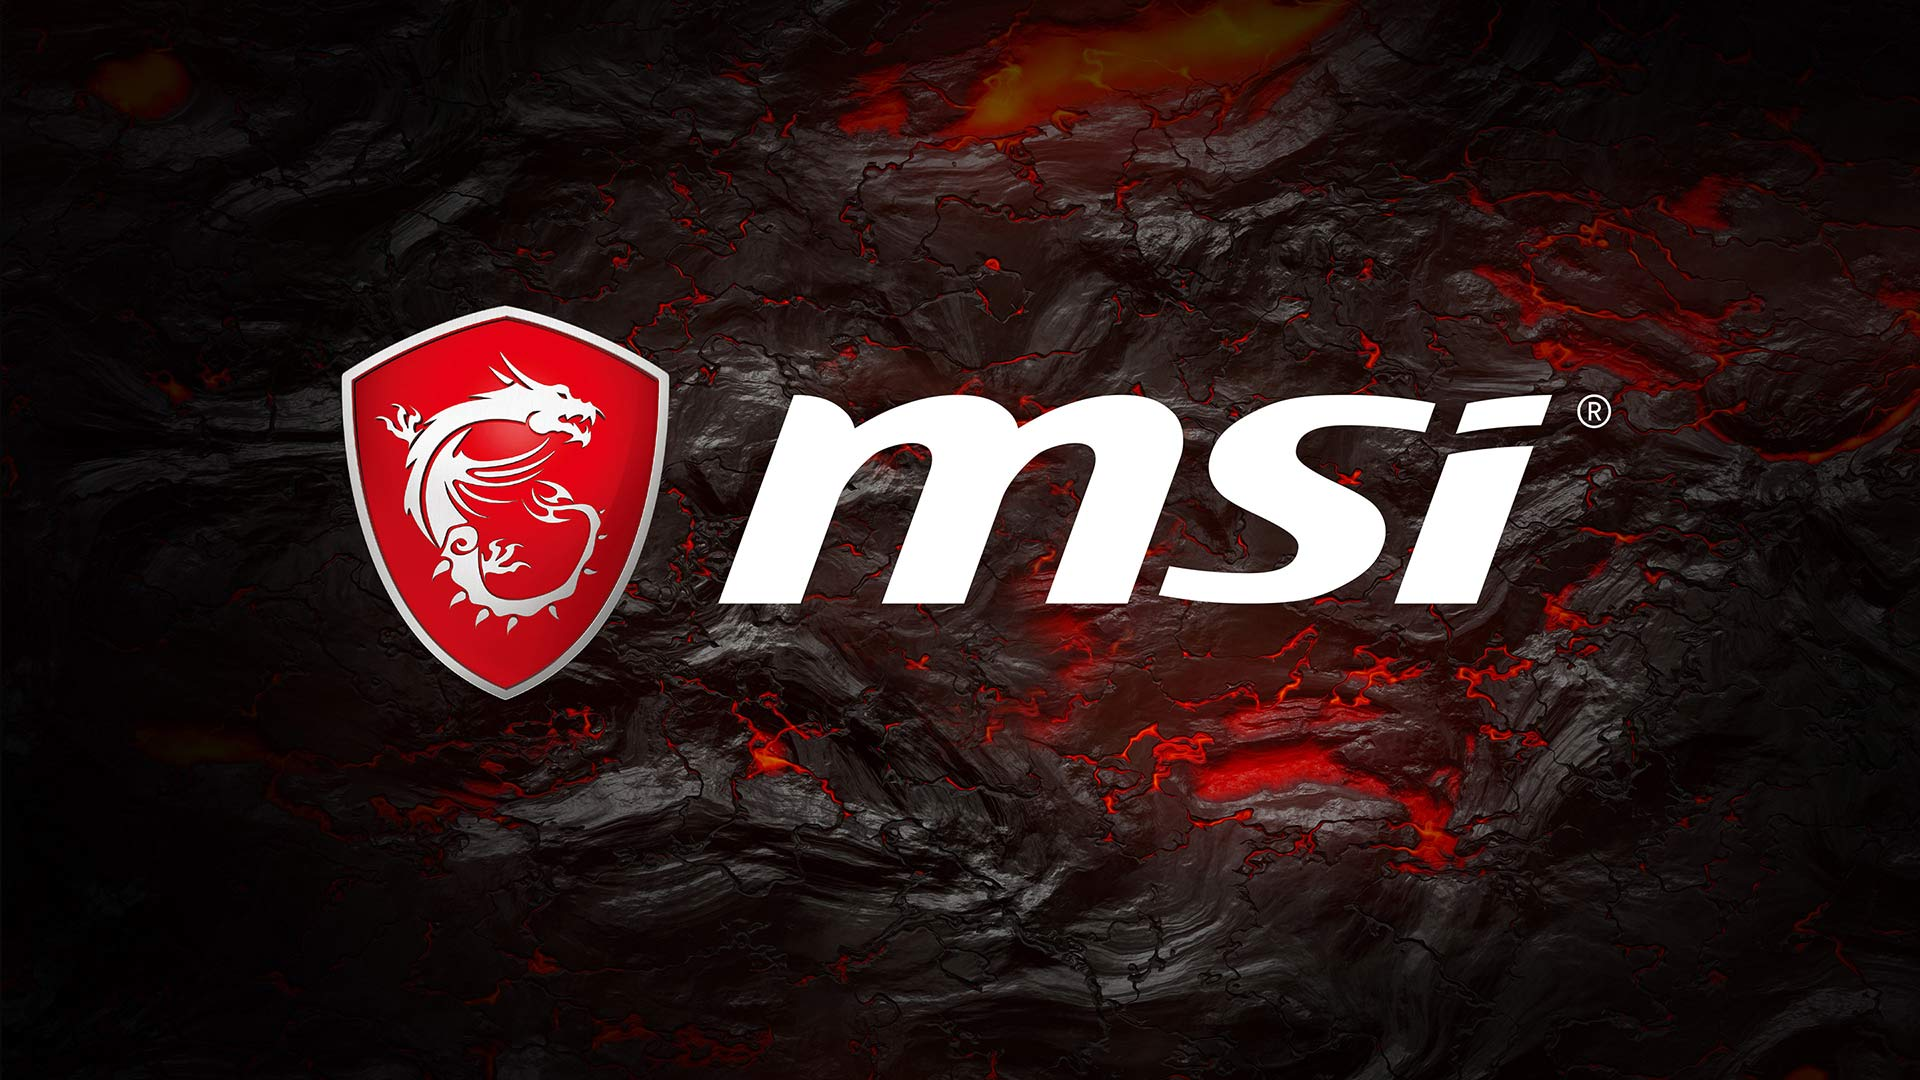 The official msi gs63vr stealth pro geforce gtx 1070 max q owner 39 s lounge page 13 - Msi logo wallpaper ...